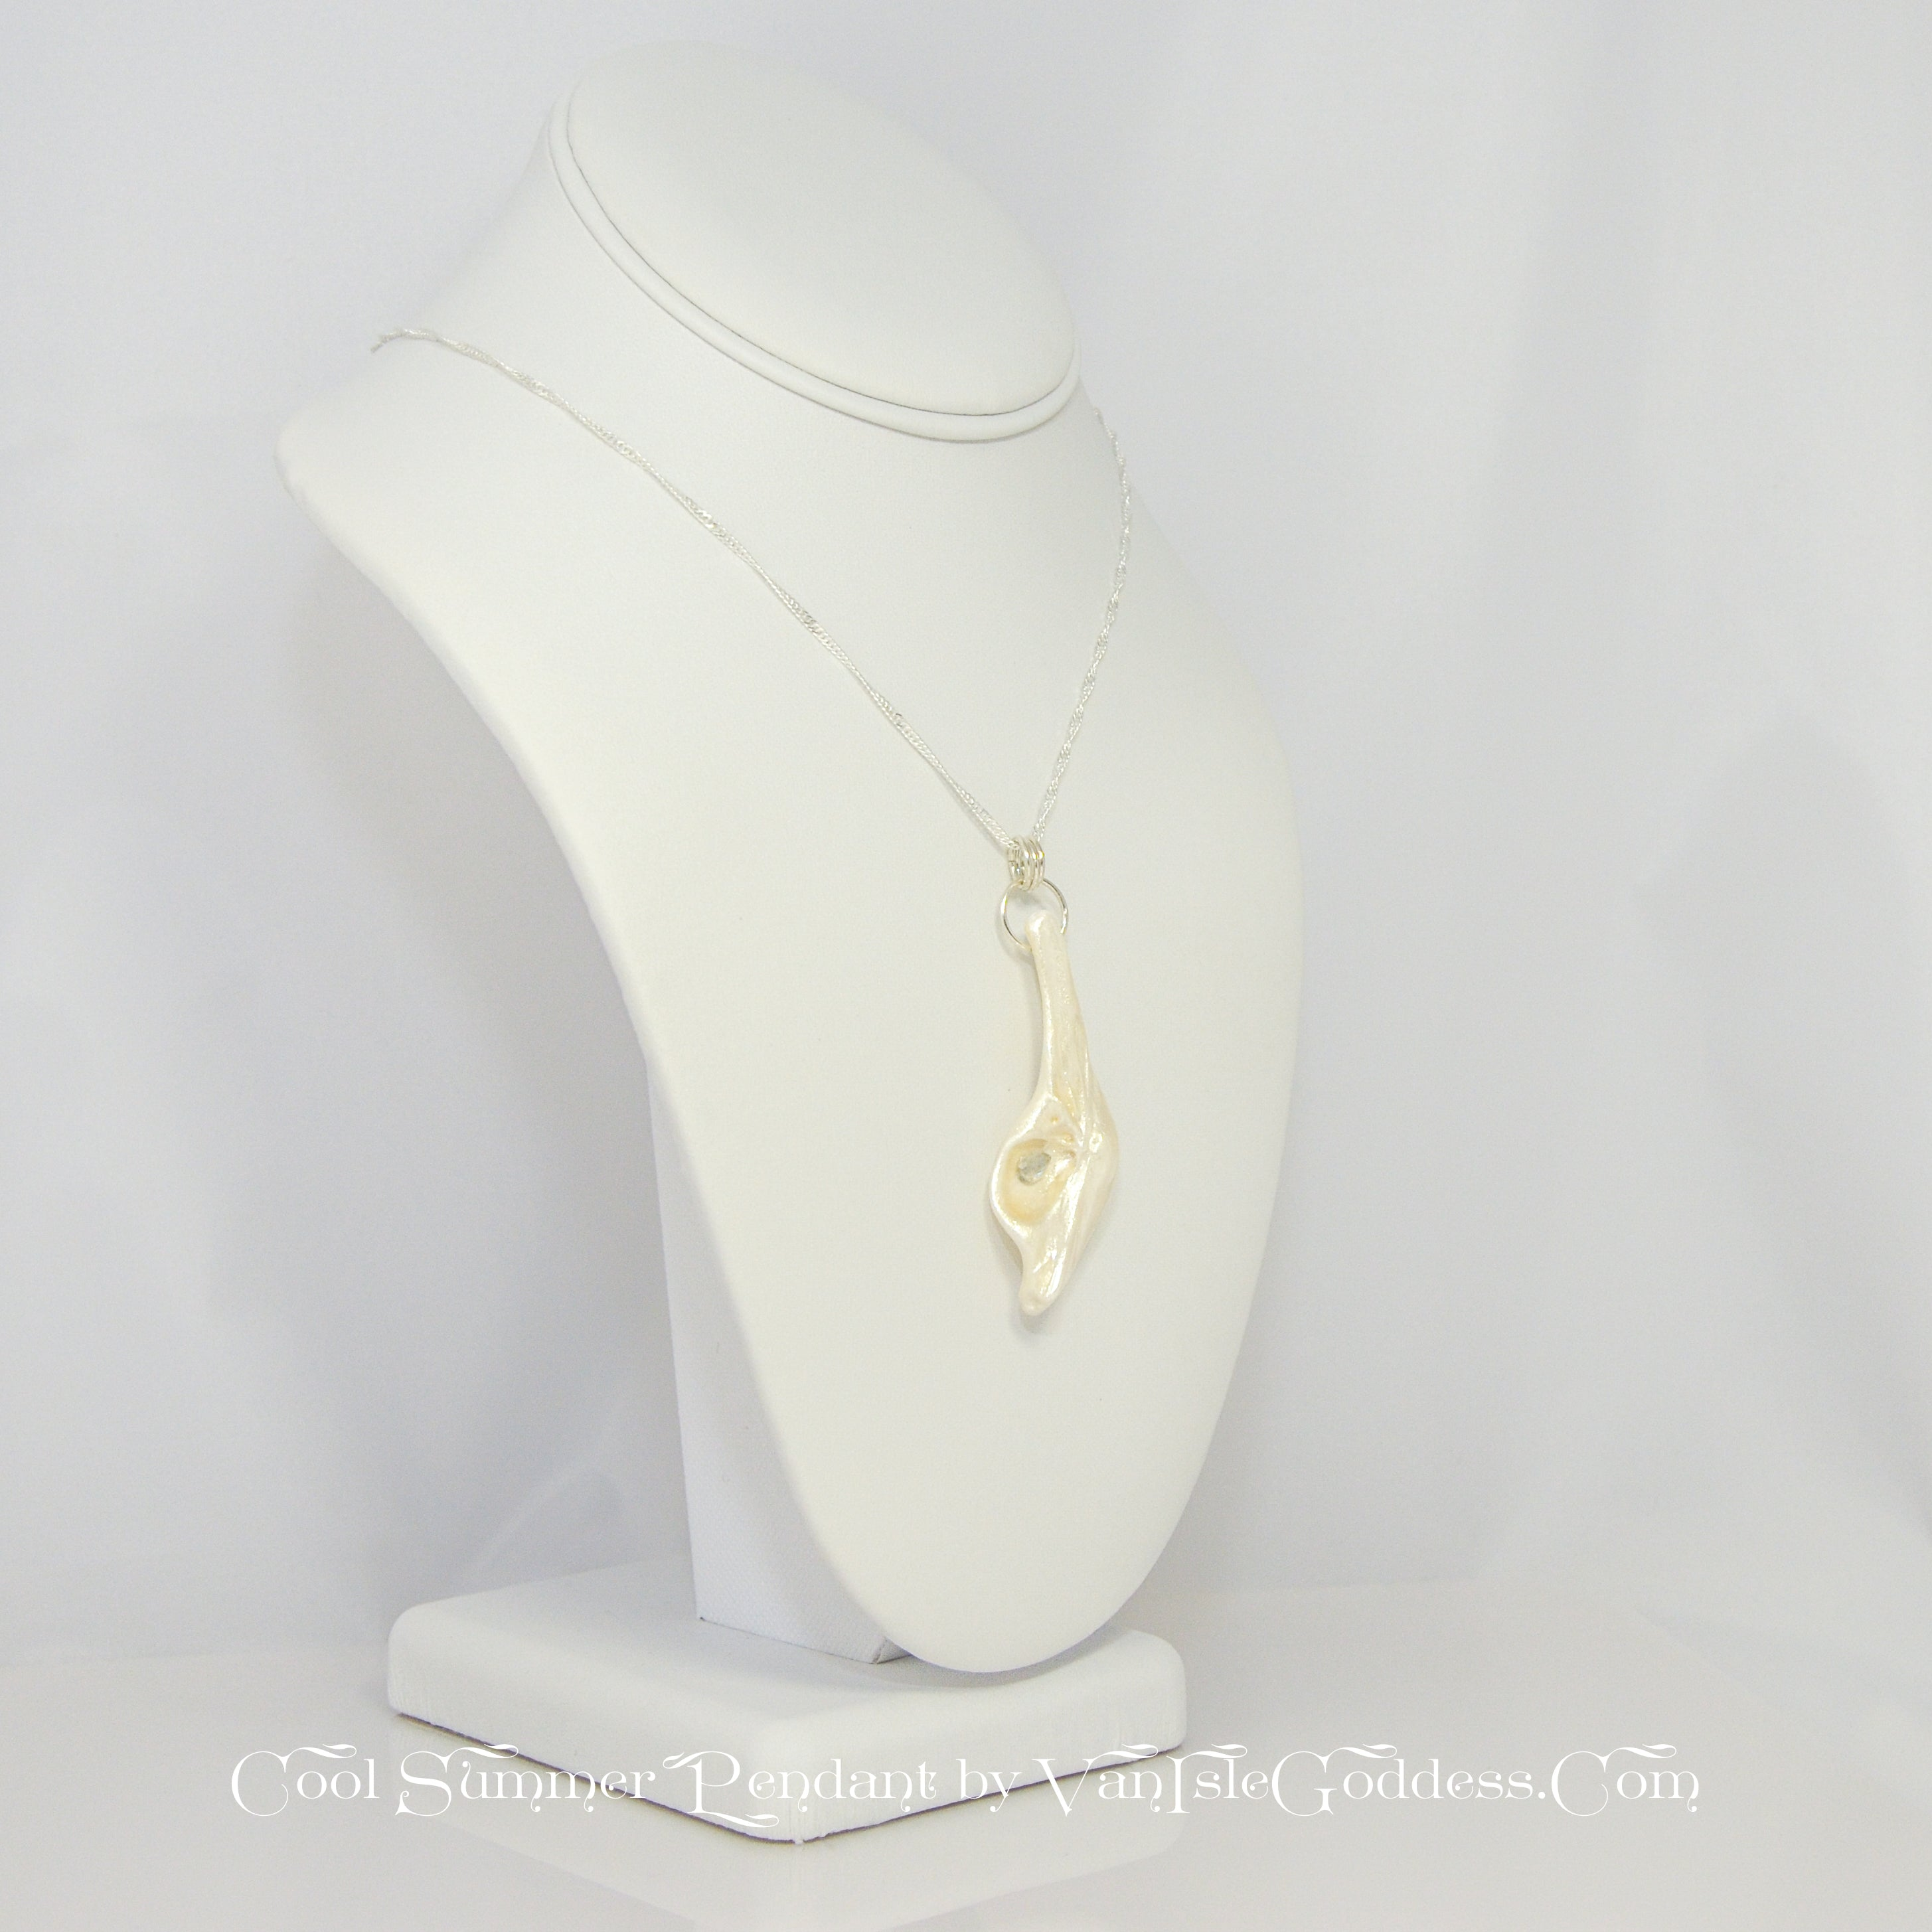 Cool Summer Island Goddess Seashell Pendant